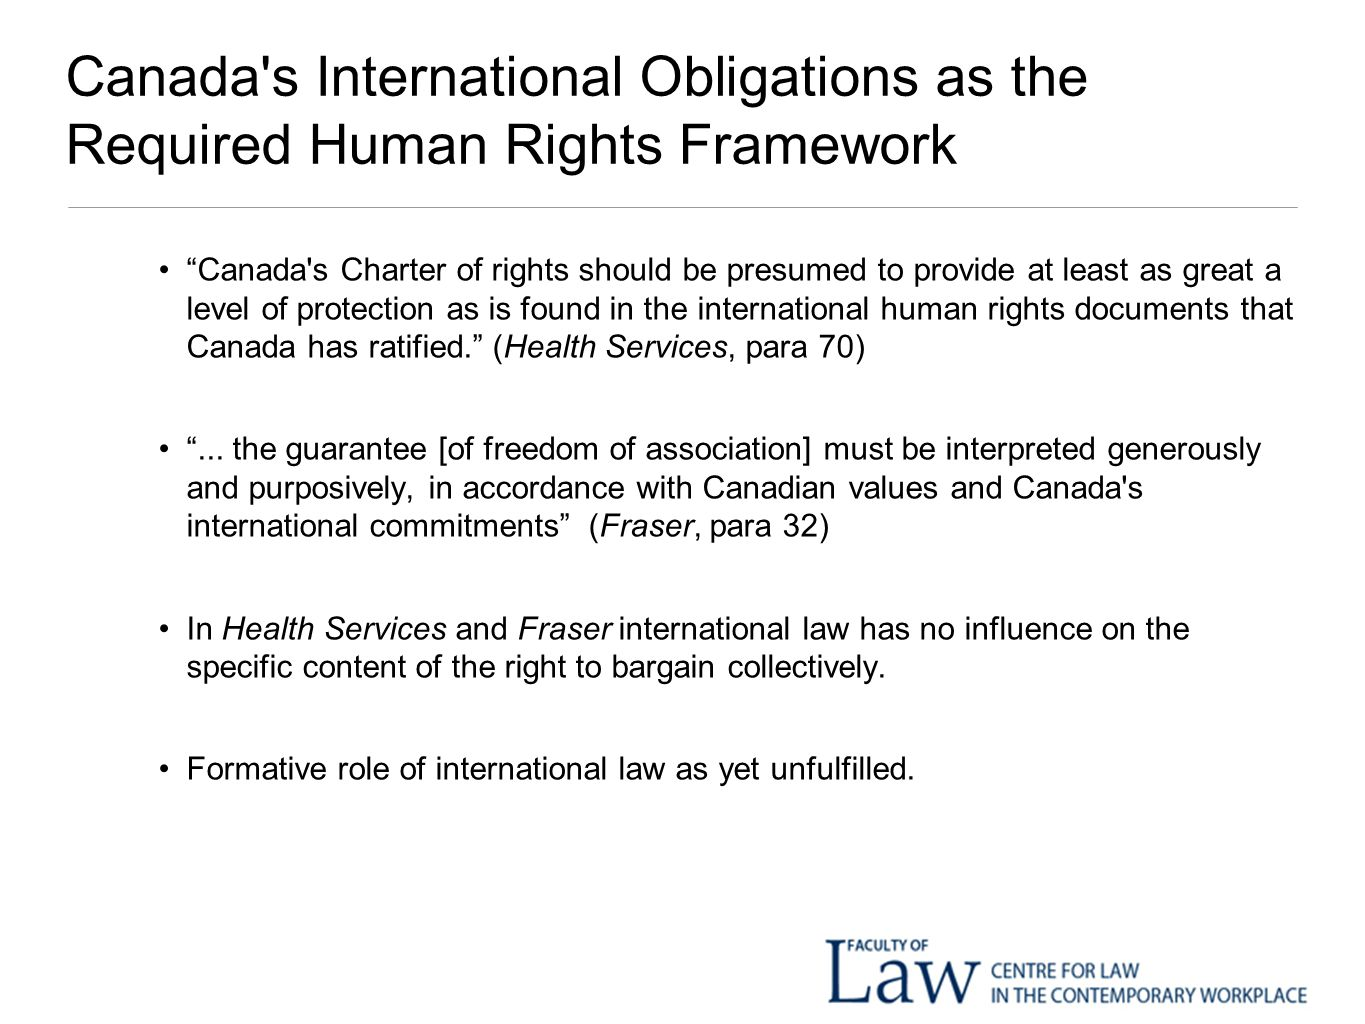 Canada s International Obligations as the Required Human Rights Framework Canada s Charter of rights should be presumed to provide at least as great a level of protection as is found in the international human rights documents that Canada has ratified. (Health Services, para 70) ...